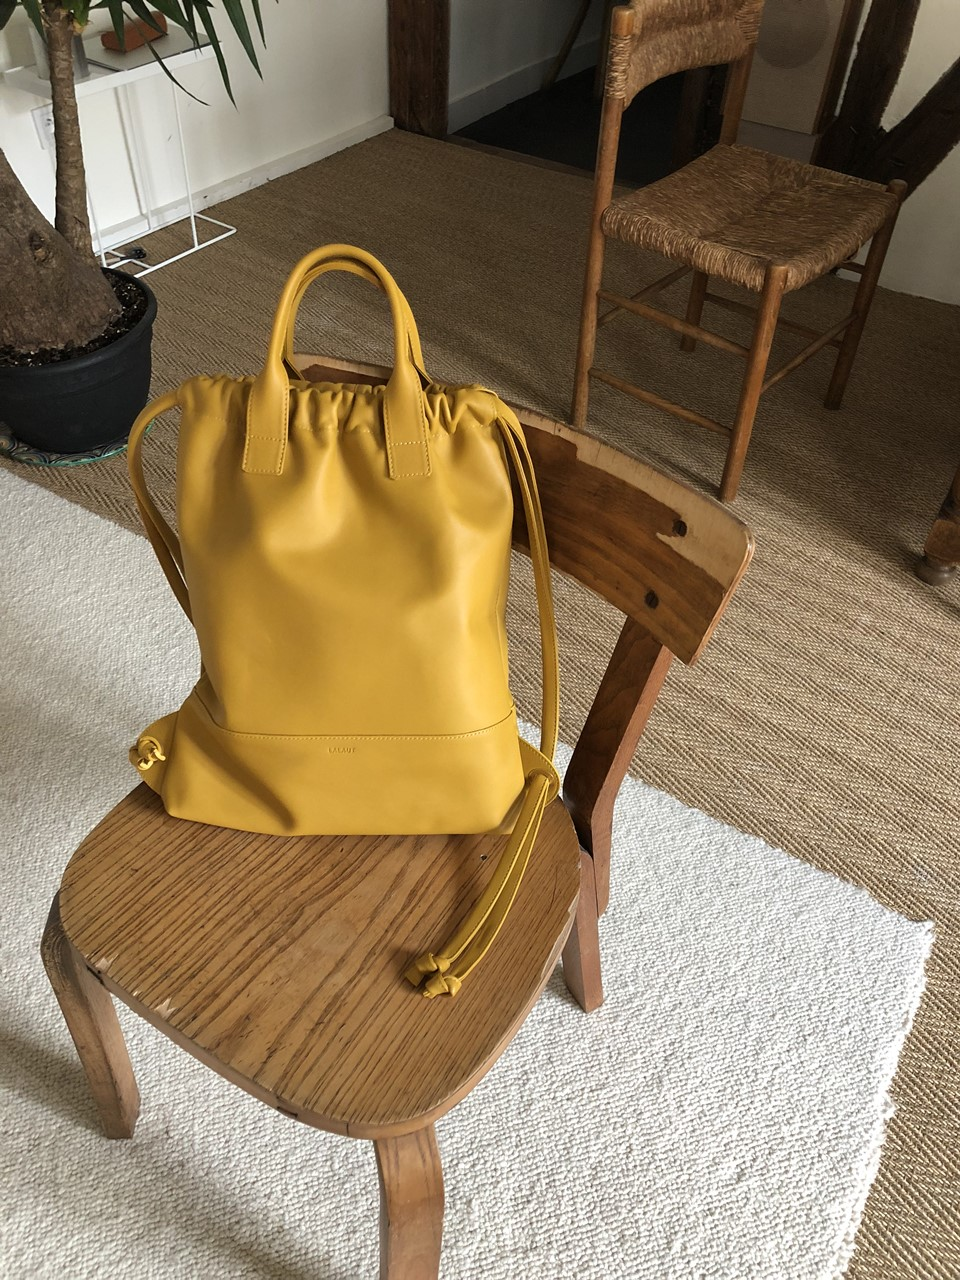 julie bag-180302MS